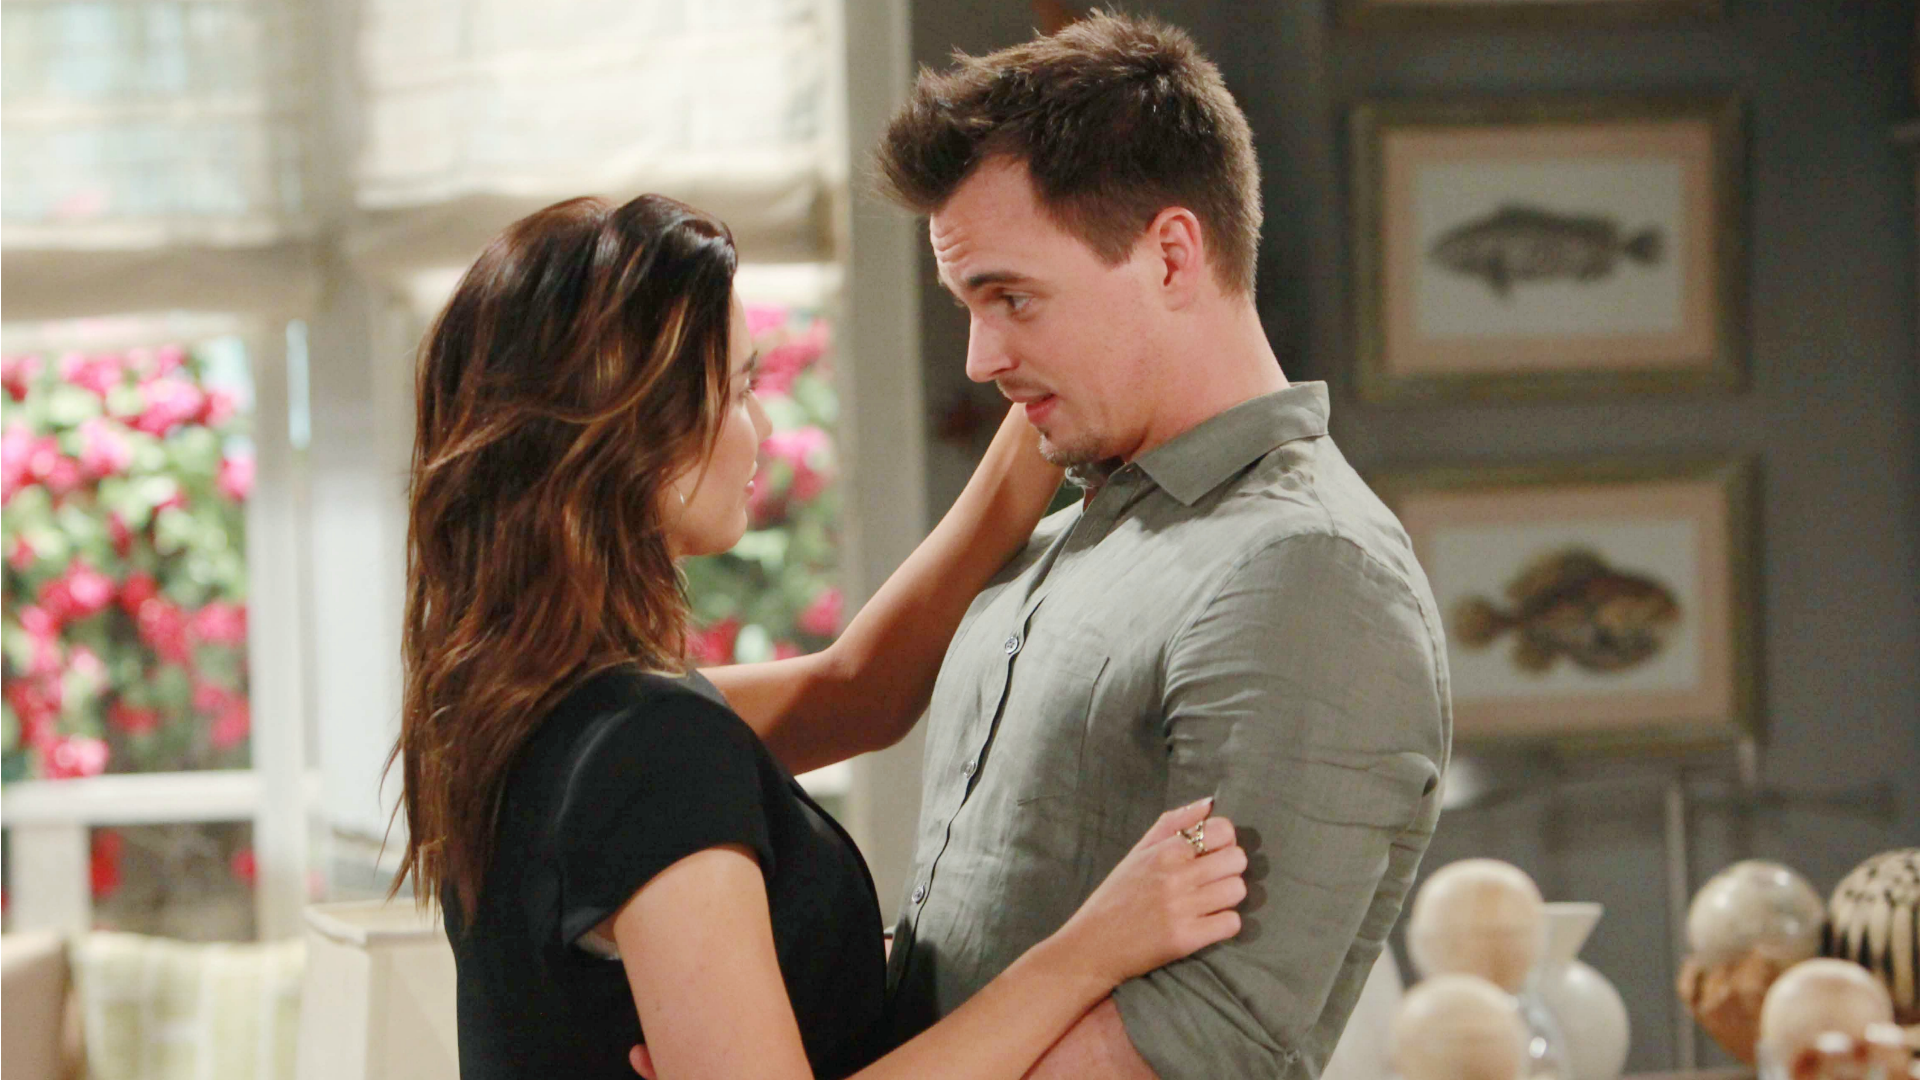 Wyatt reminds Steffy of his love for her.